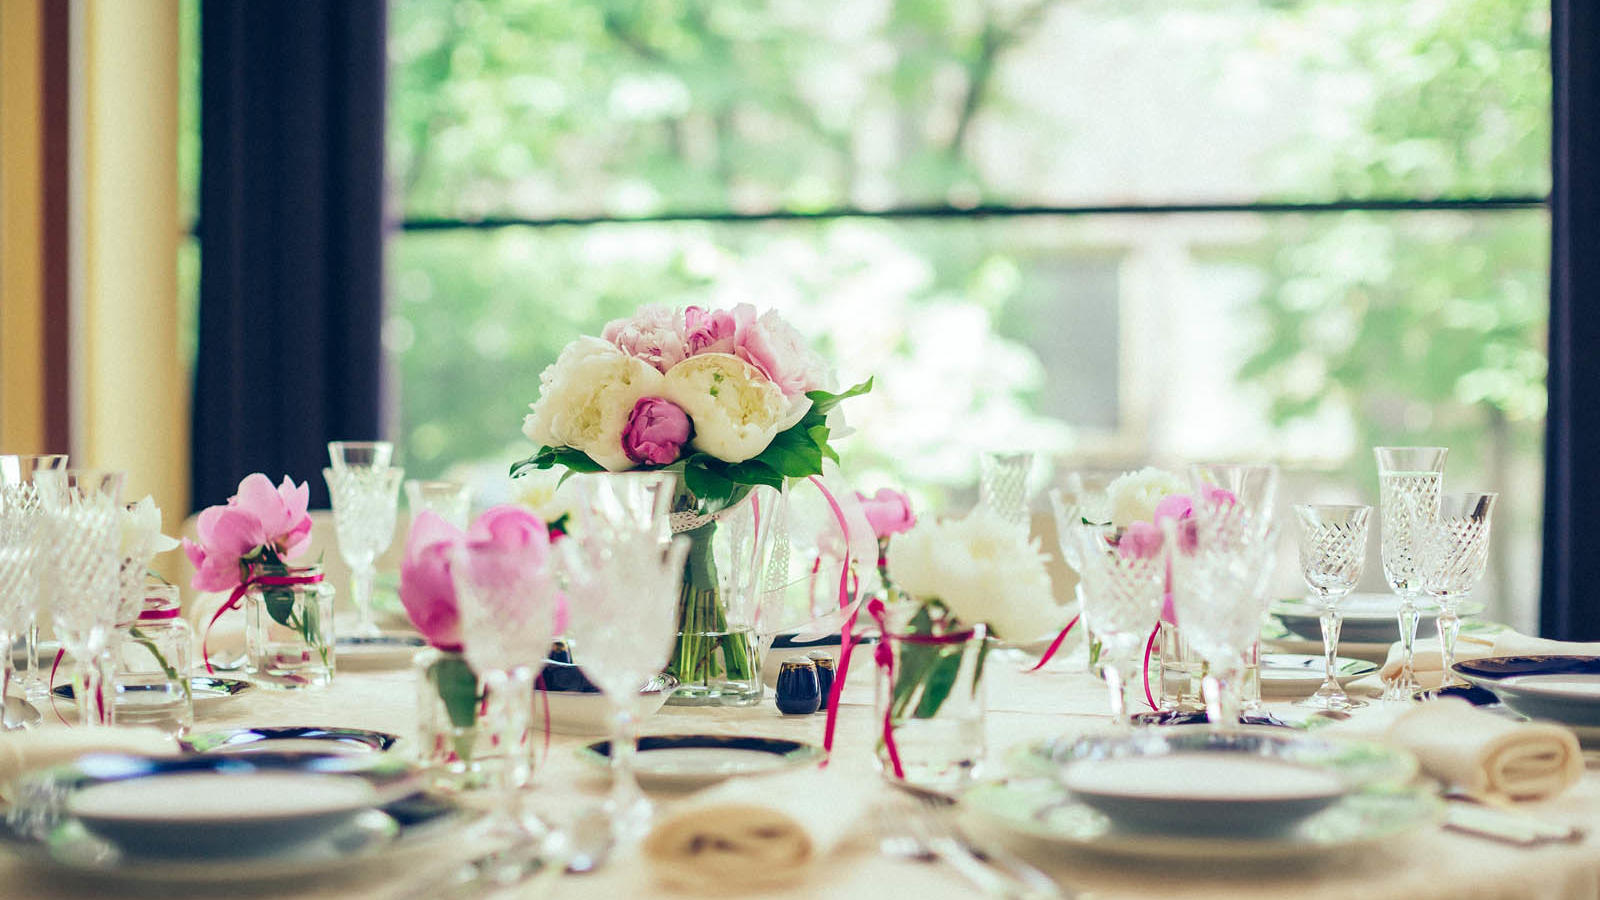 Union Hotels Collection Ljubljana Slovenia wedding 4